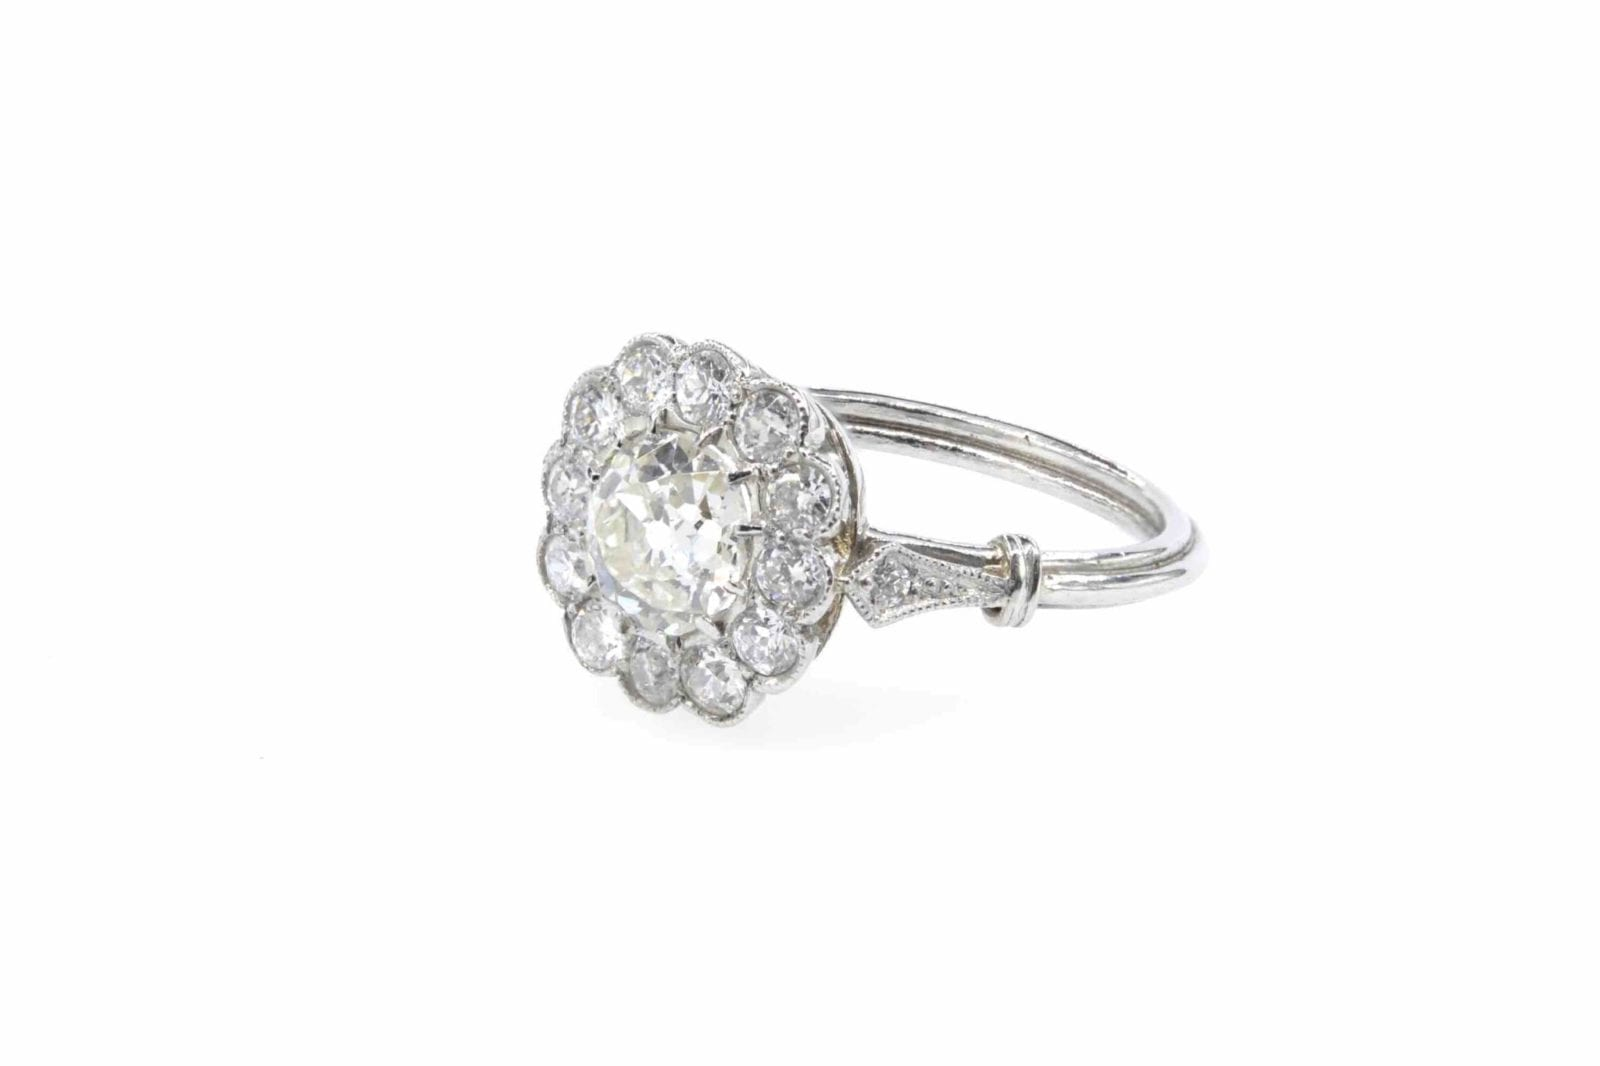 Bague marguerite diamants en platine